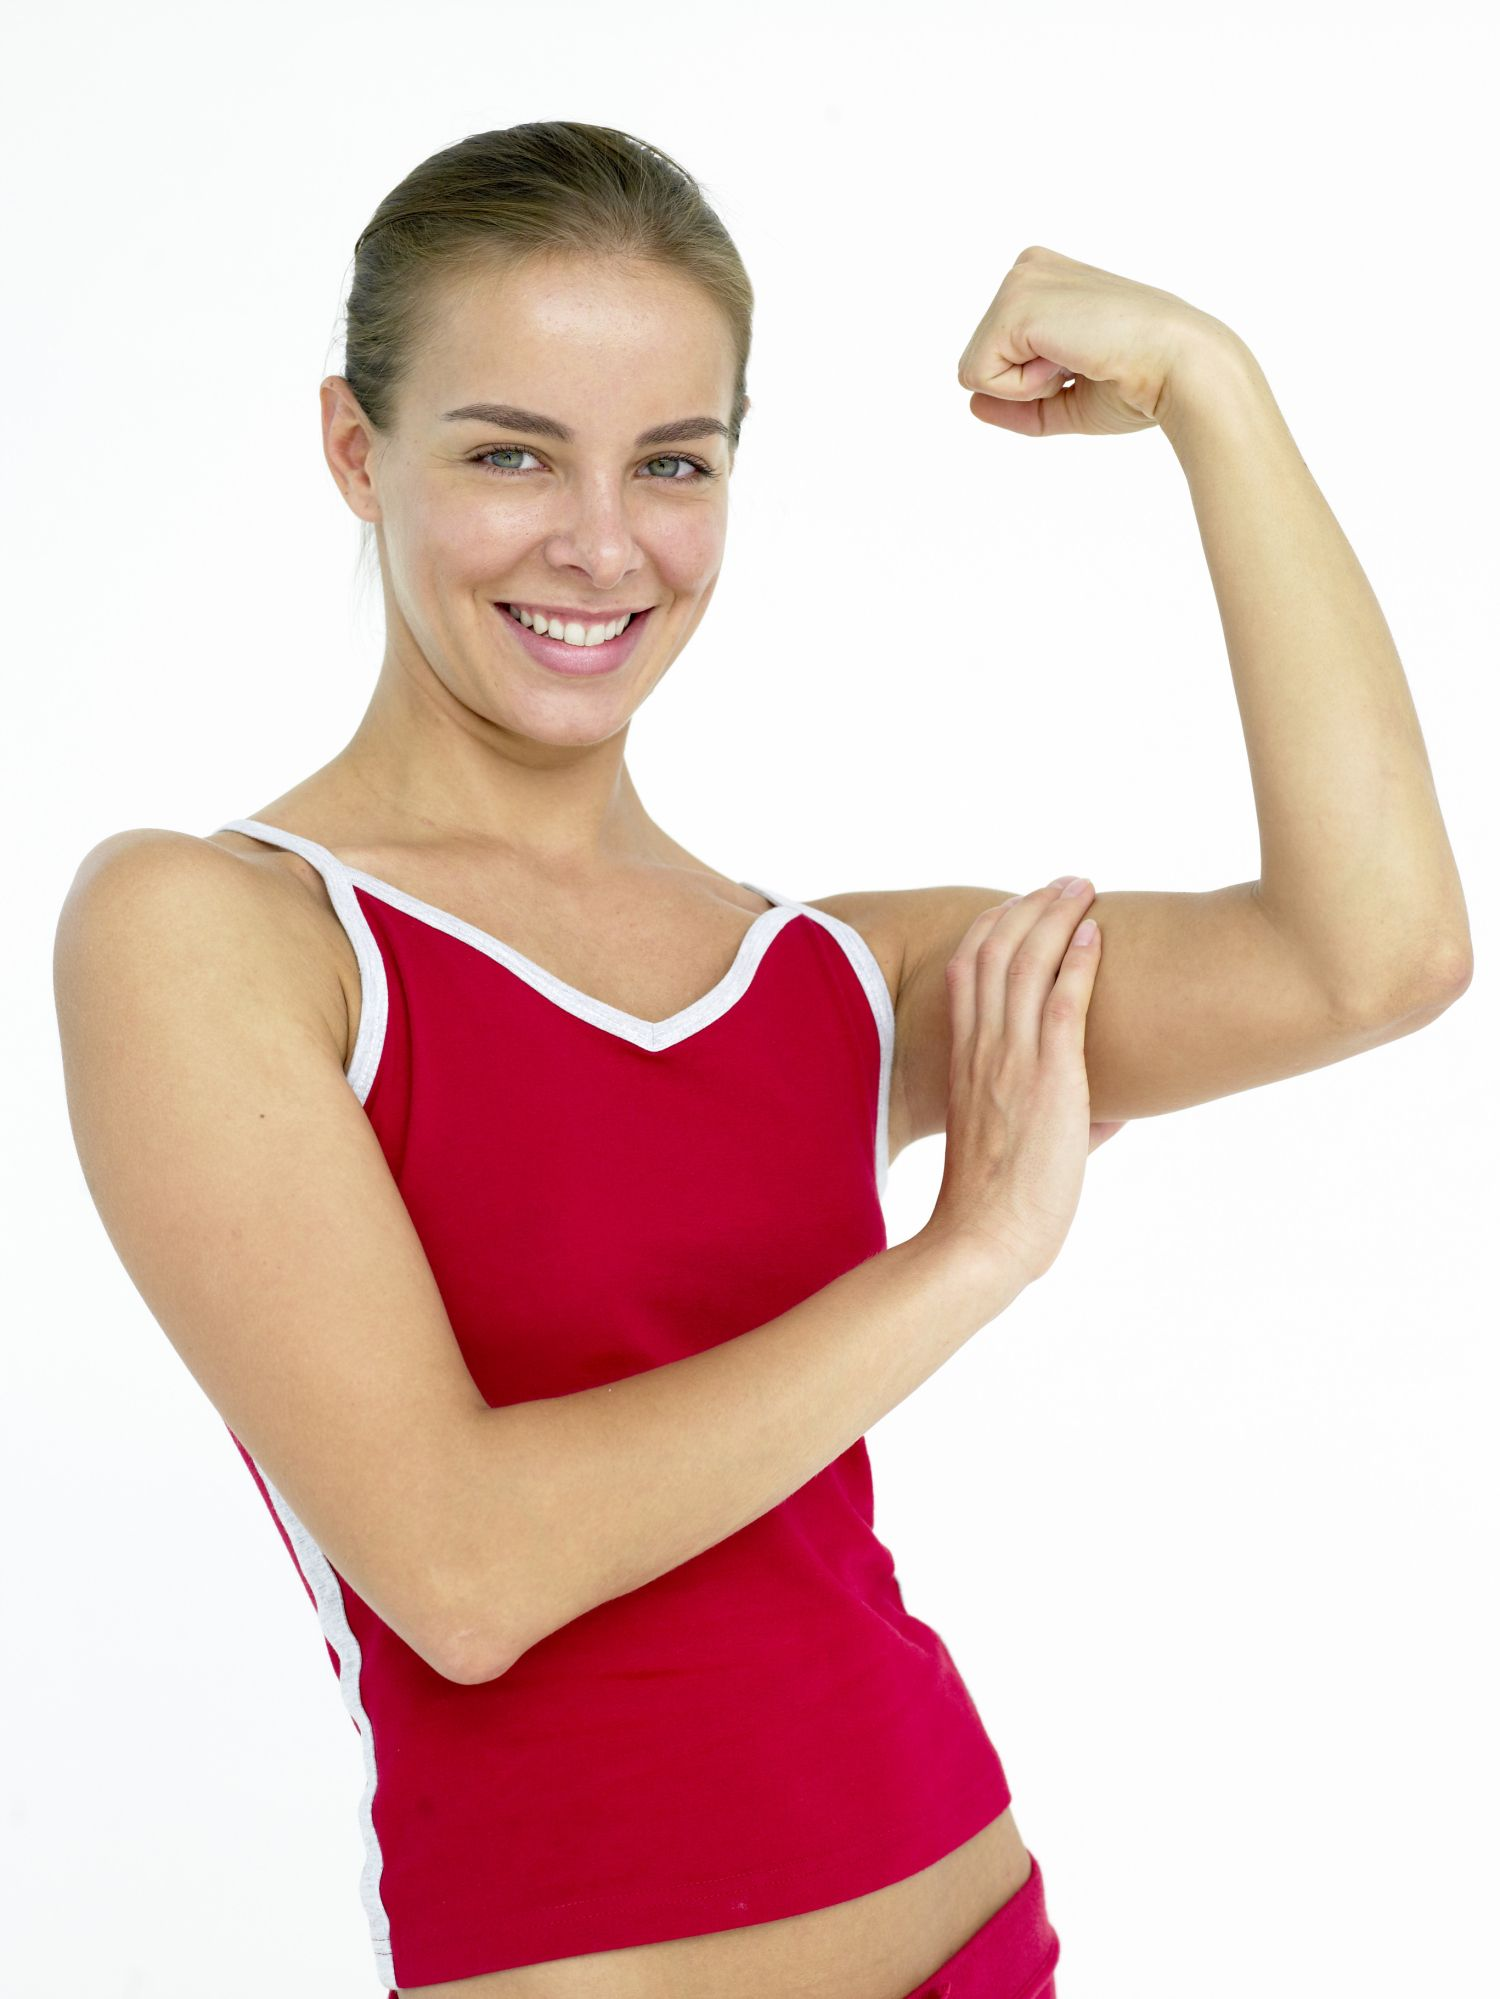 Best workout to lose weight and gain muscle